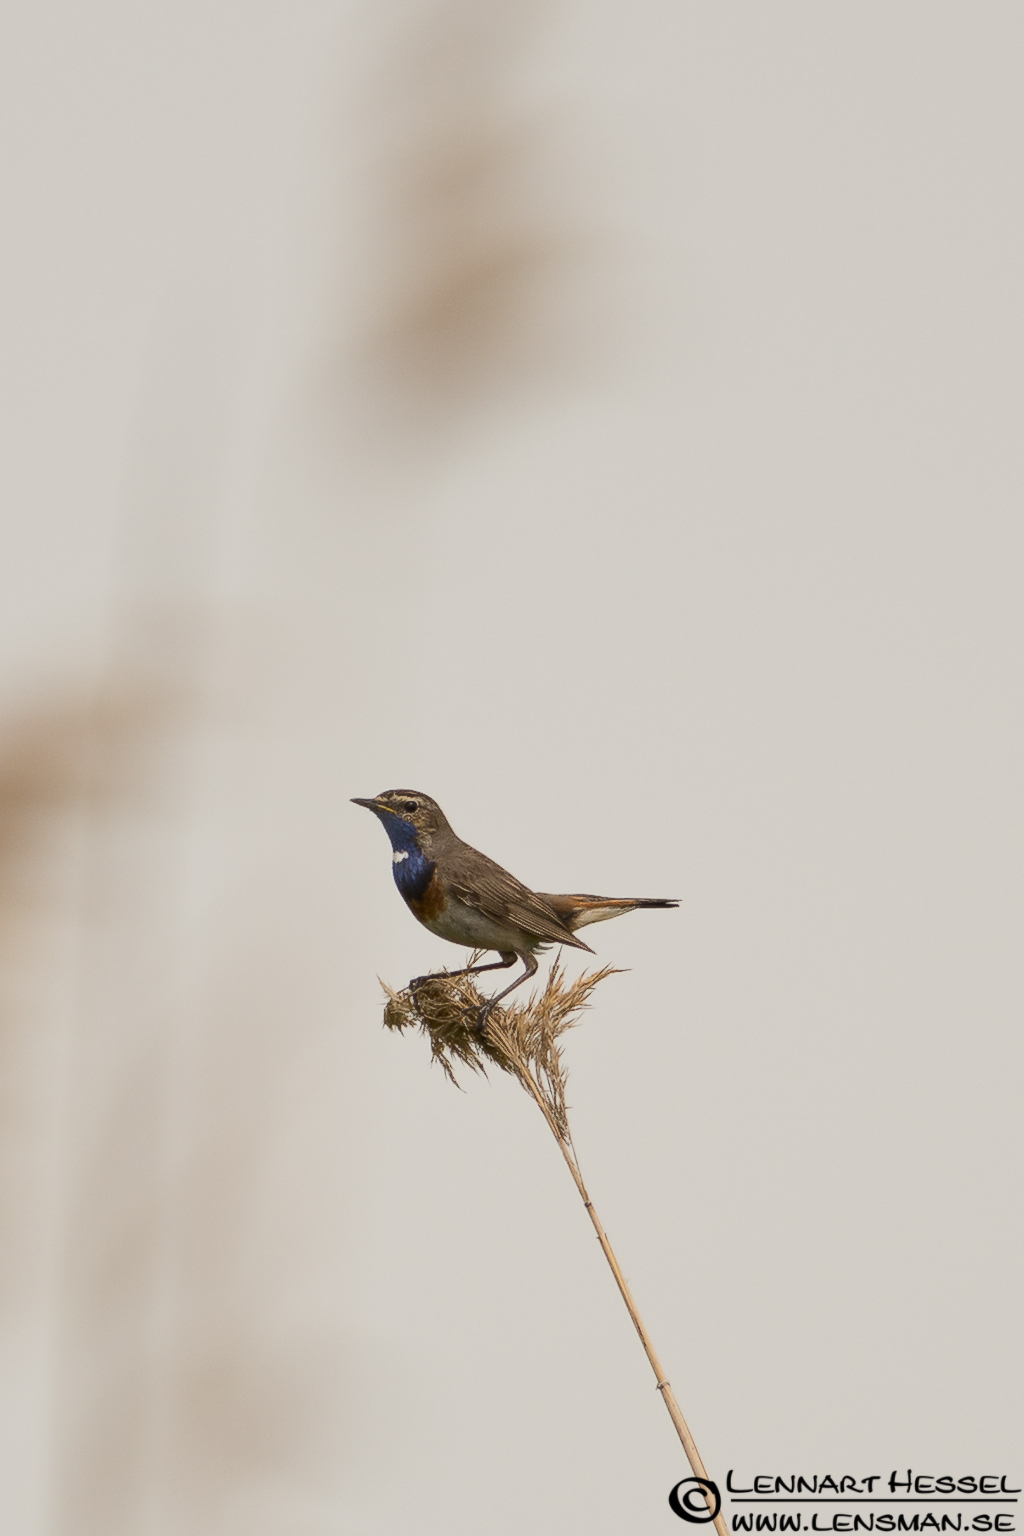 Bluethroat in Hungary